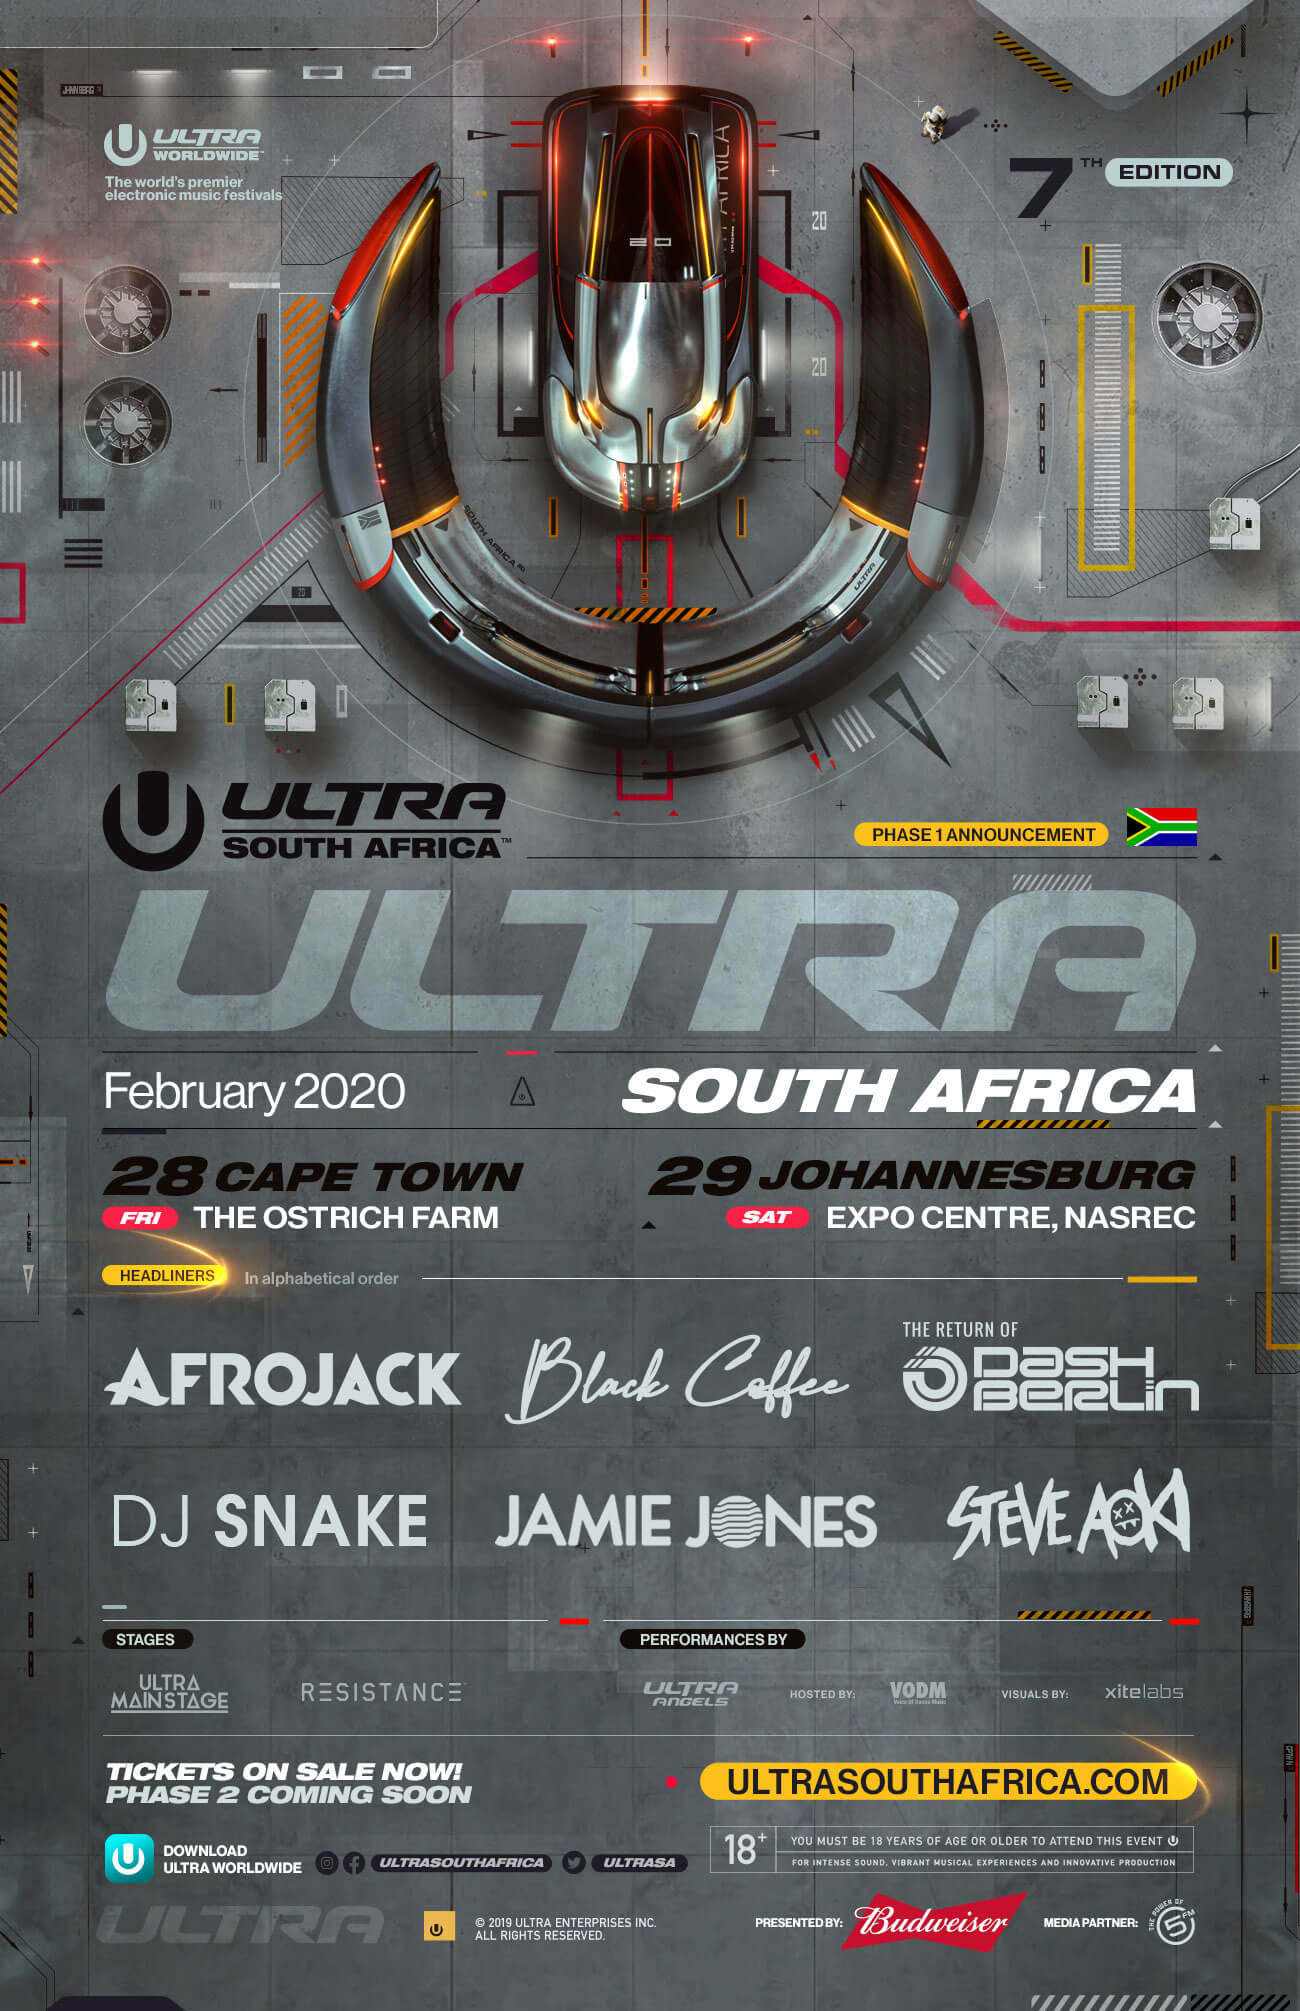 south africa lineup phase1 2020 - Ultra South Africa 2020: Phase one line-up announced